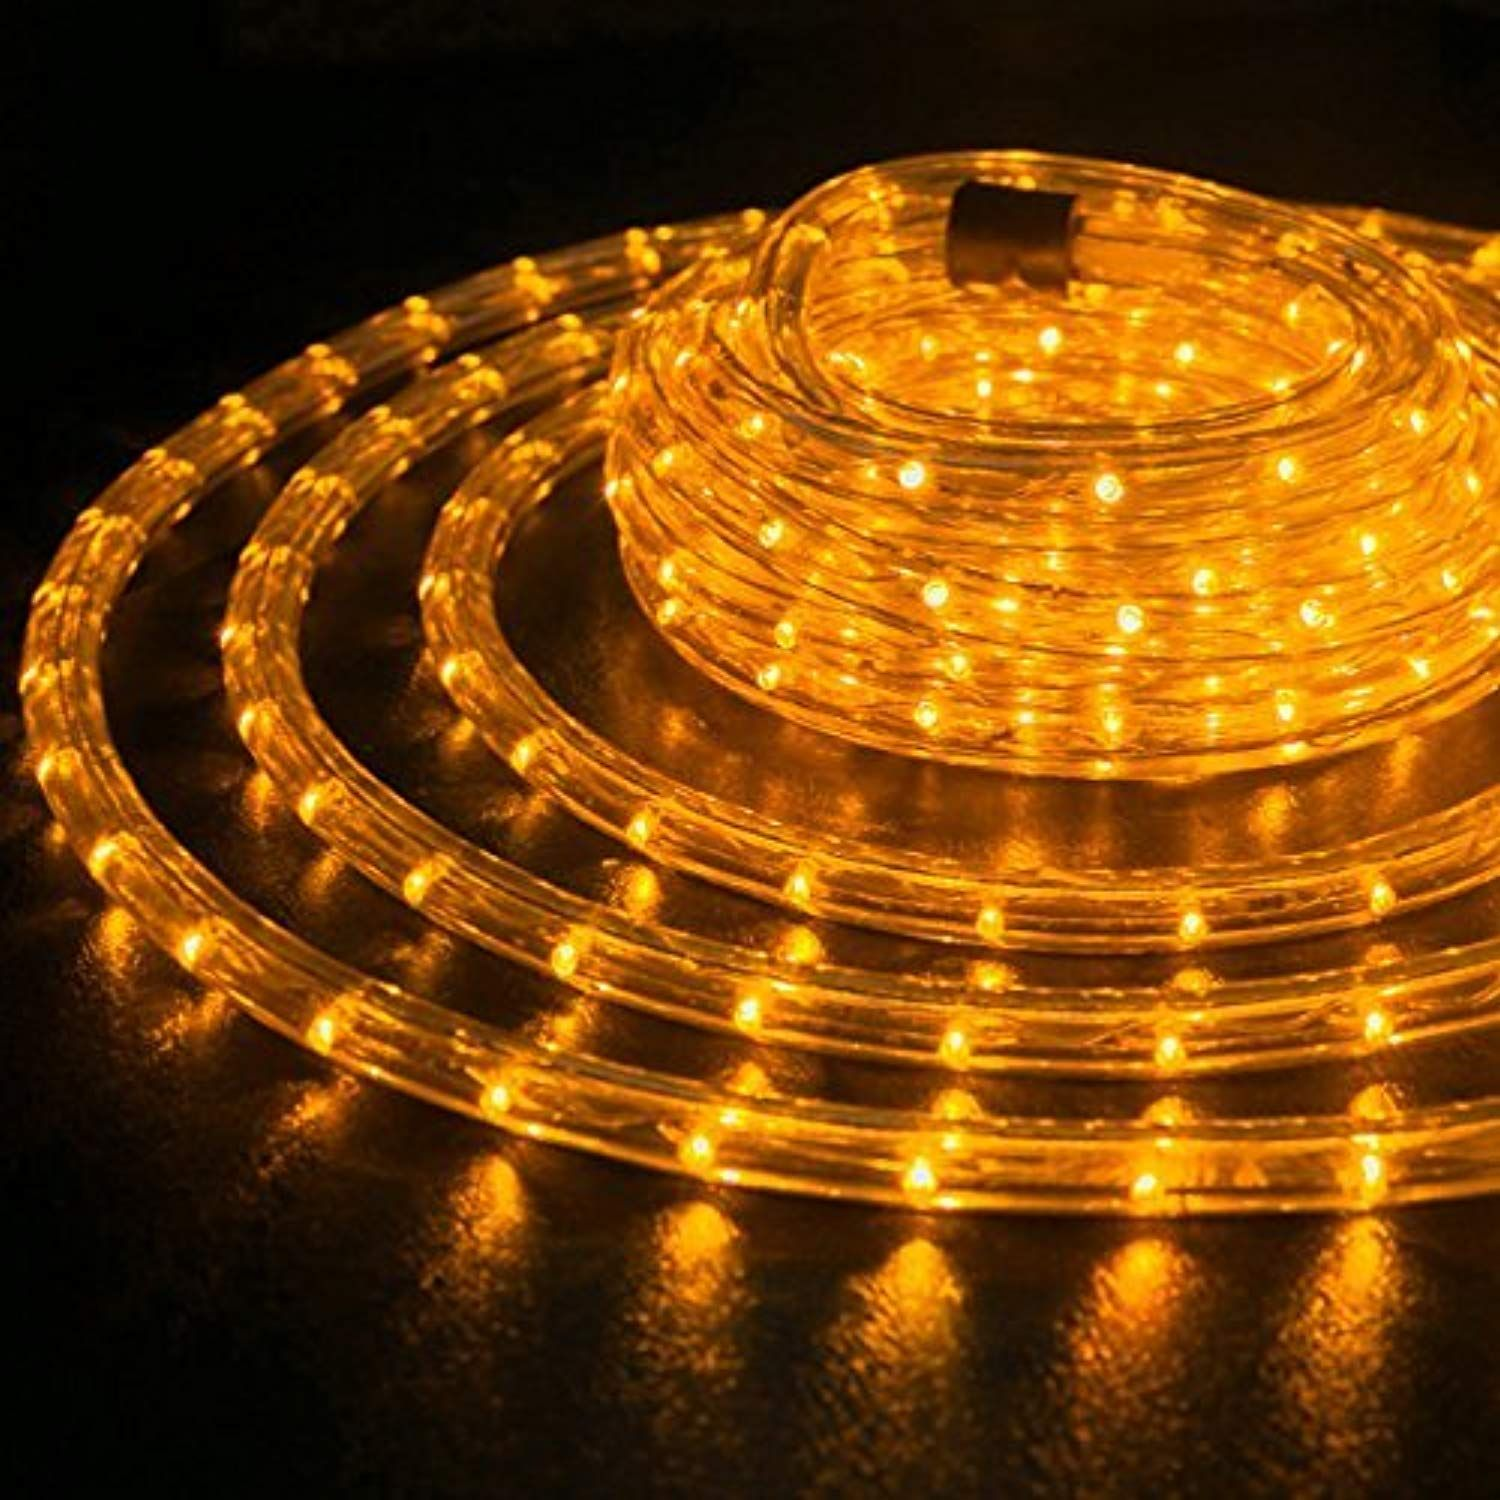 Wyzworks 100 Feet 1 2 Thick Orange Pre Assembled Led Rope Lights With 10 25 50 150 Option Christmas Holiday Deco Led Rope Lights Led Rope Rope Lights